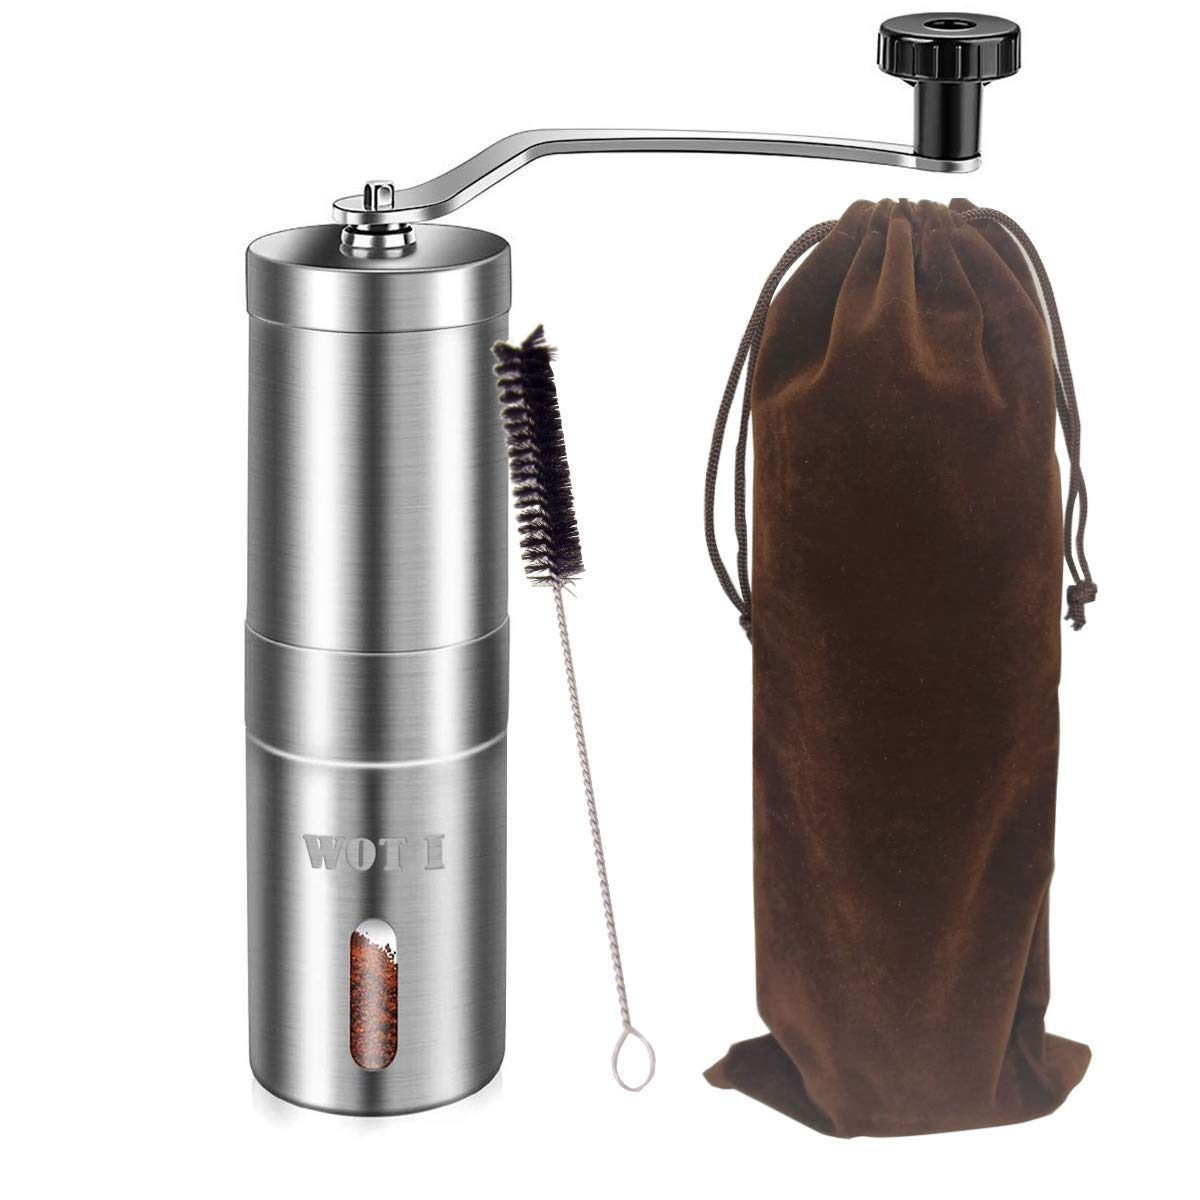 Manual Coffee Grinder, WOT I Stainless Steel Coffee Grinder with Adjustable Ceramic Conical Burr, Ideal for Home, Office, and Travelling, AeroPress Compatible, Come With A Spices Brush and Storage Bag by WOT I